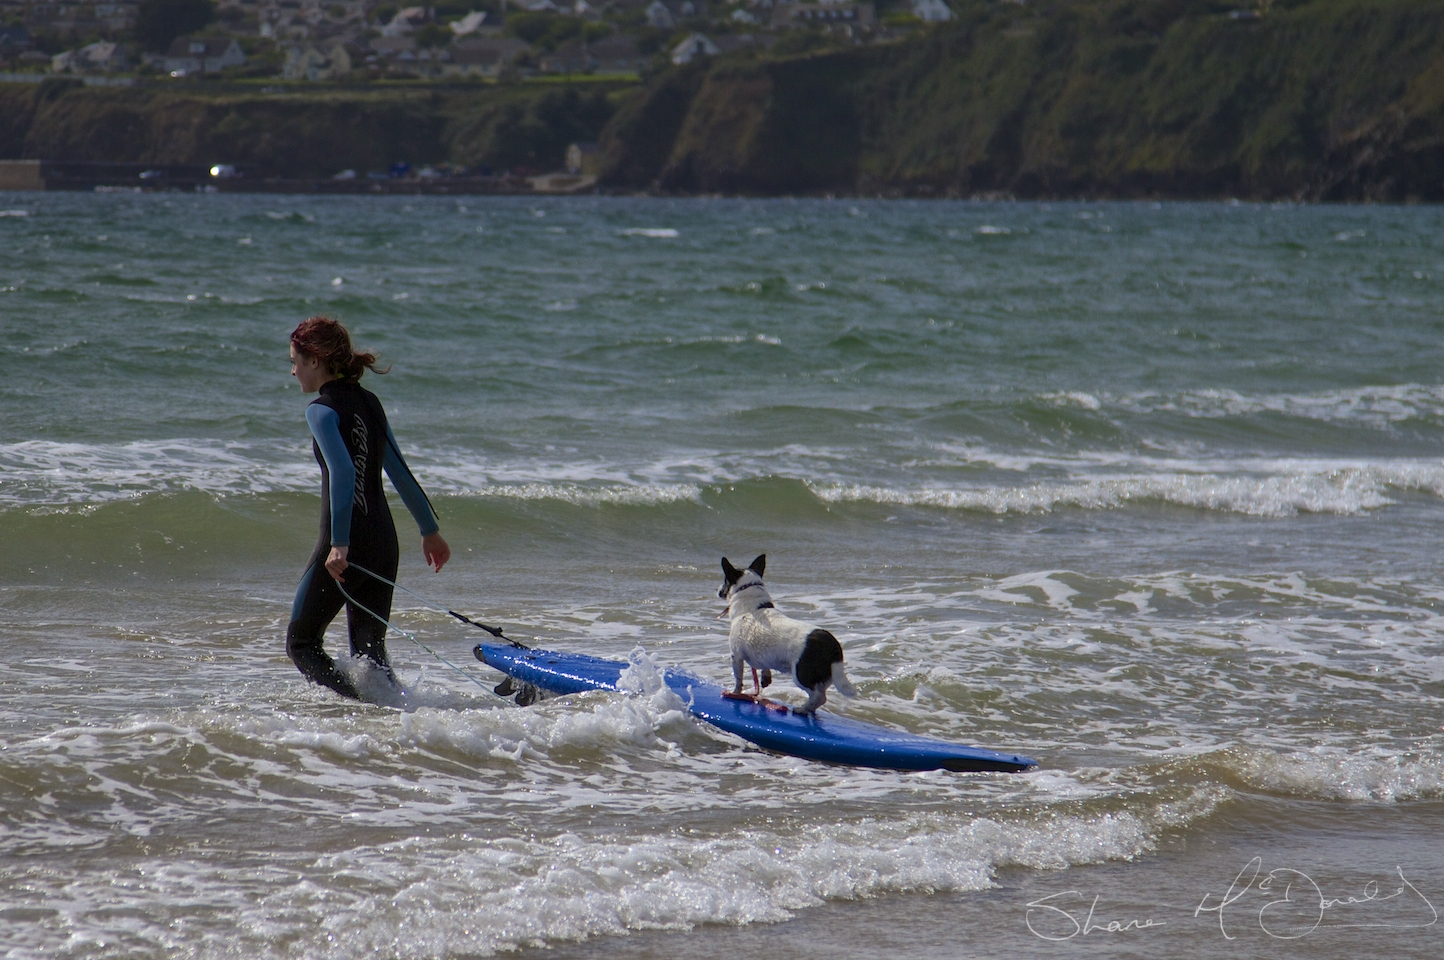 Tramore Dog Surfing – Yes, Dog Surfing!